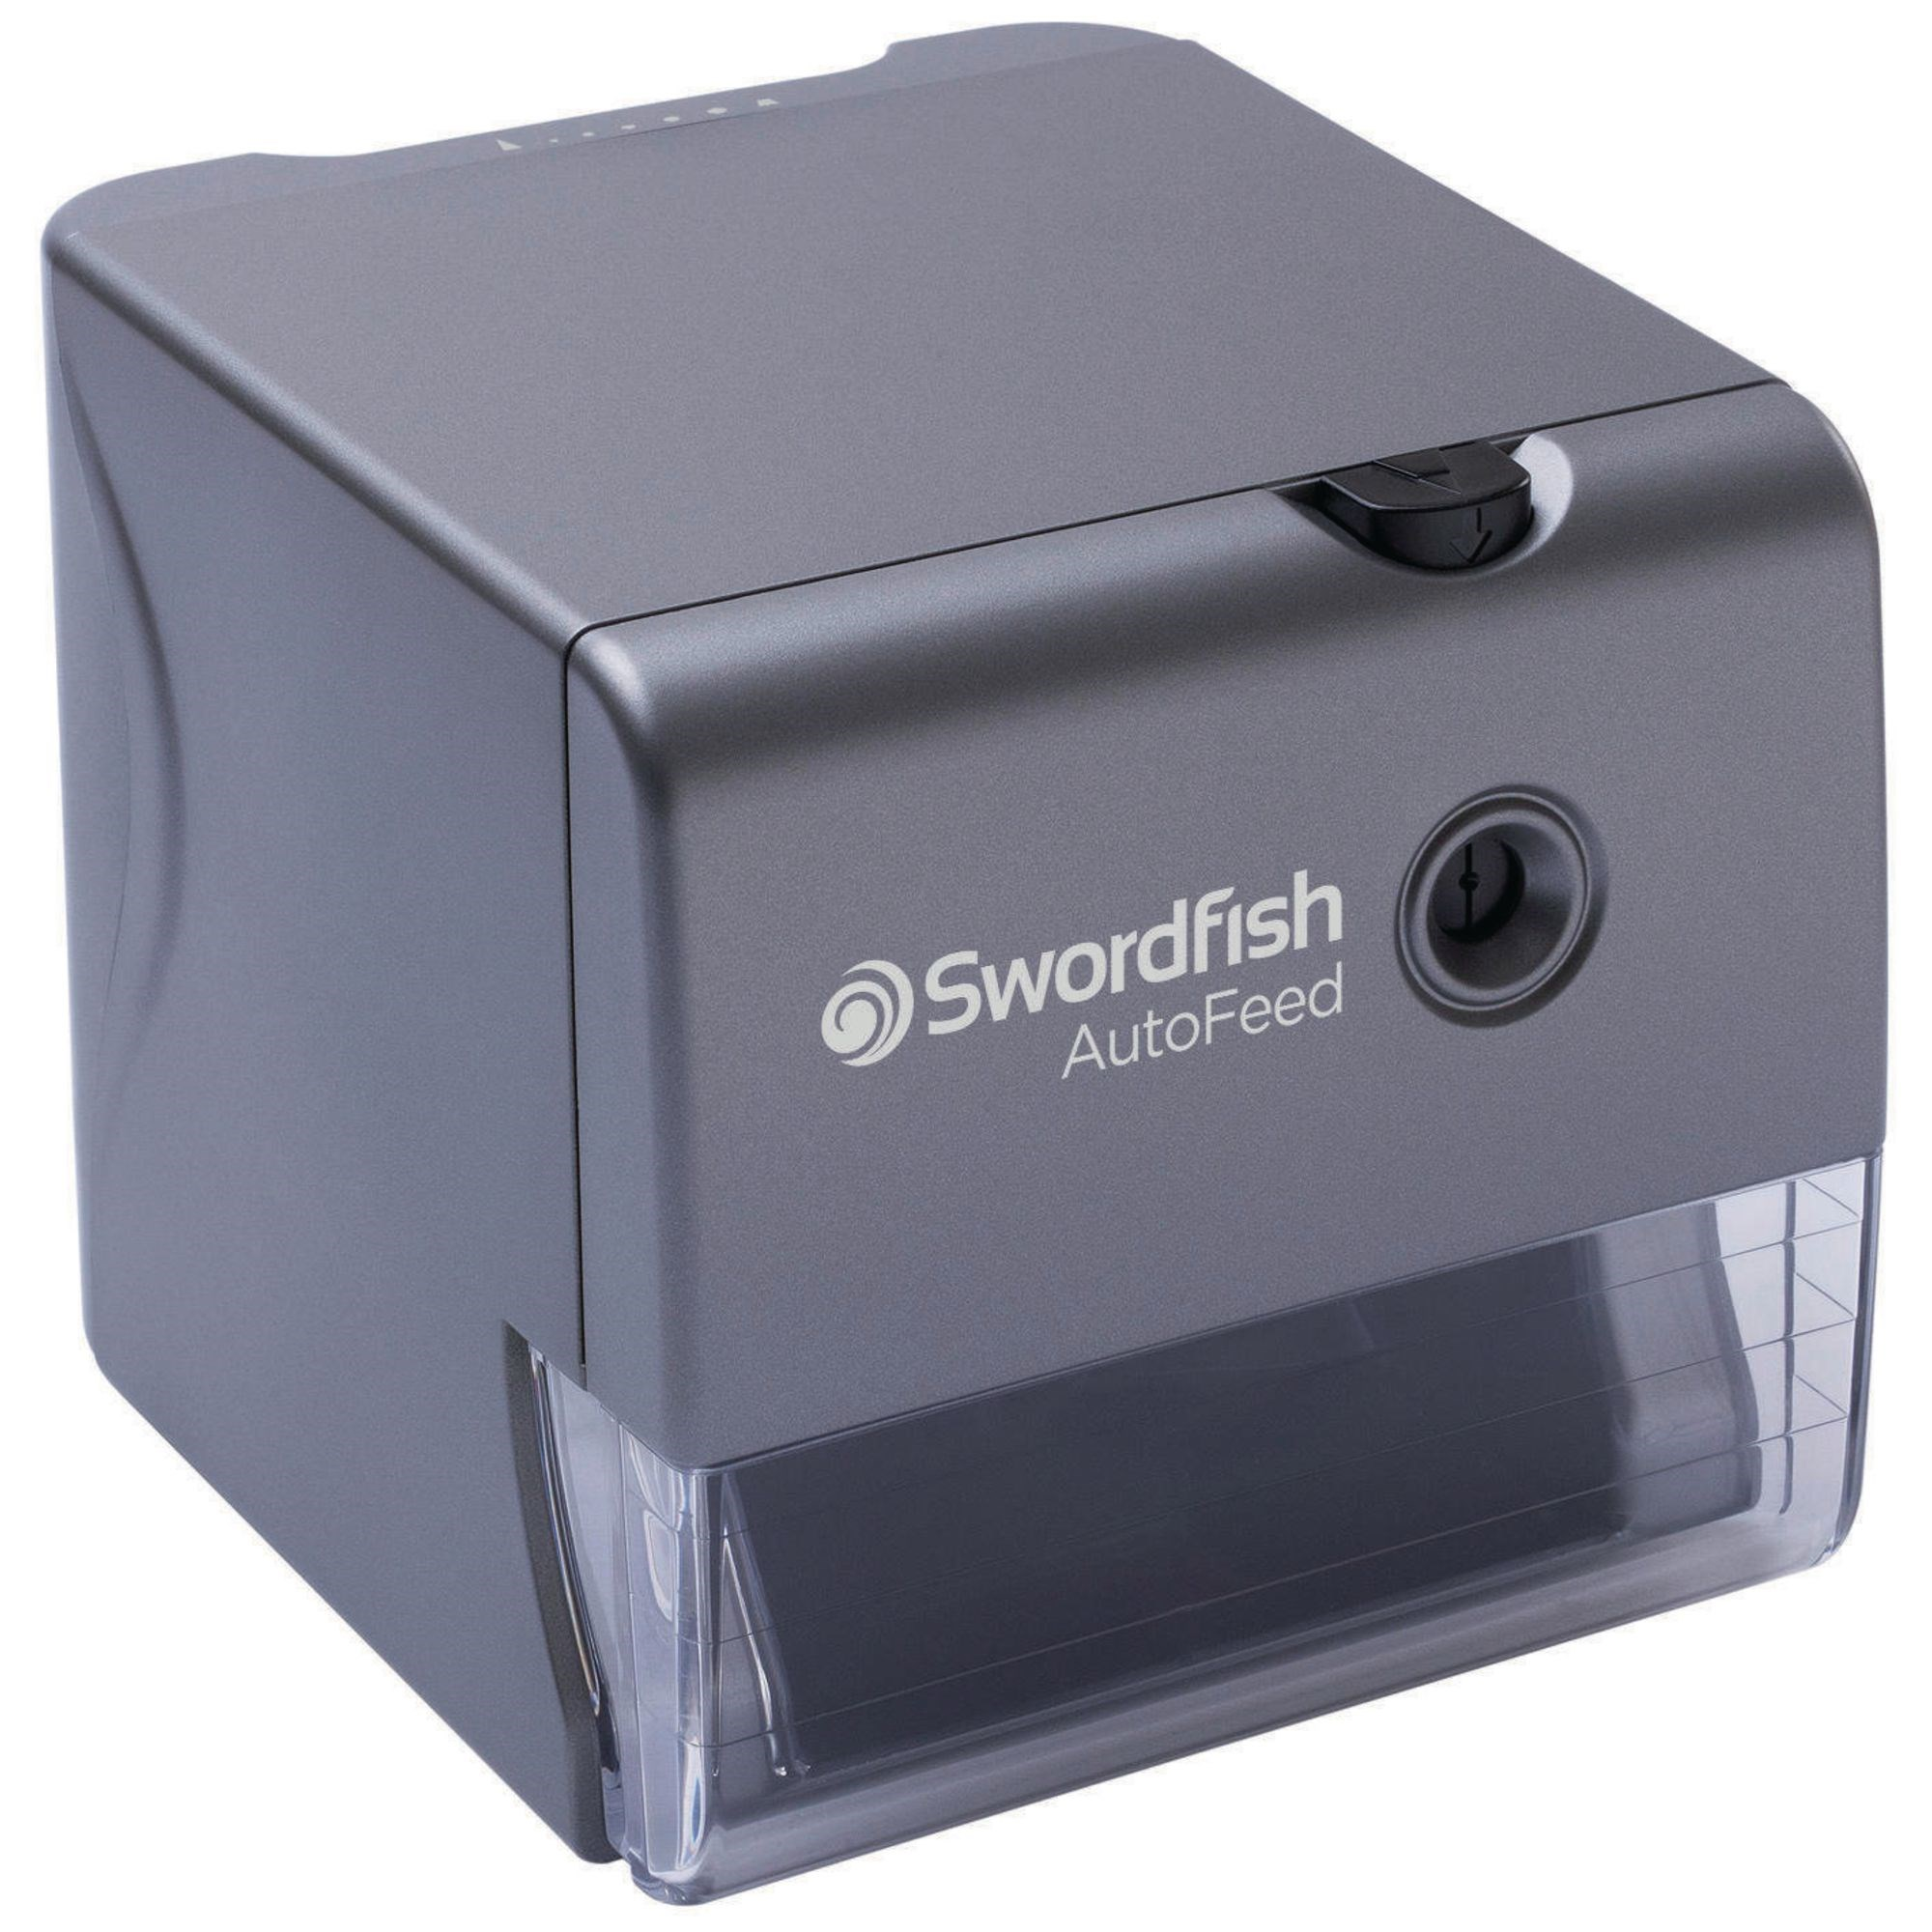 Swordfish Autofeed Electric Single Hole Sharpener